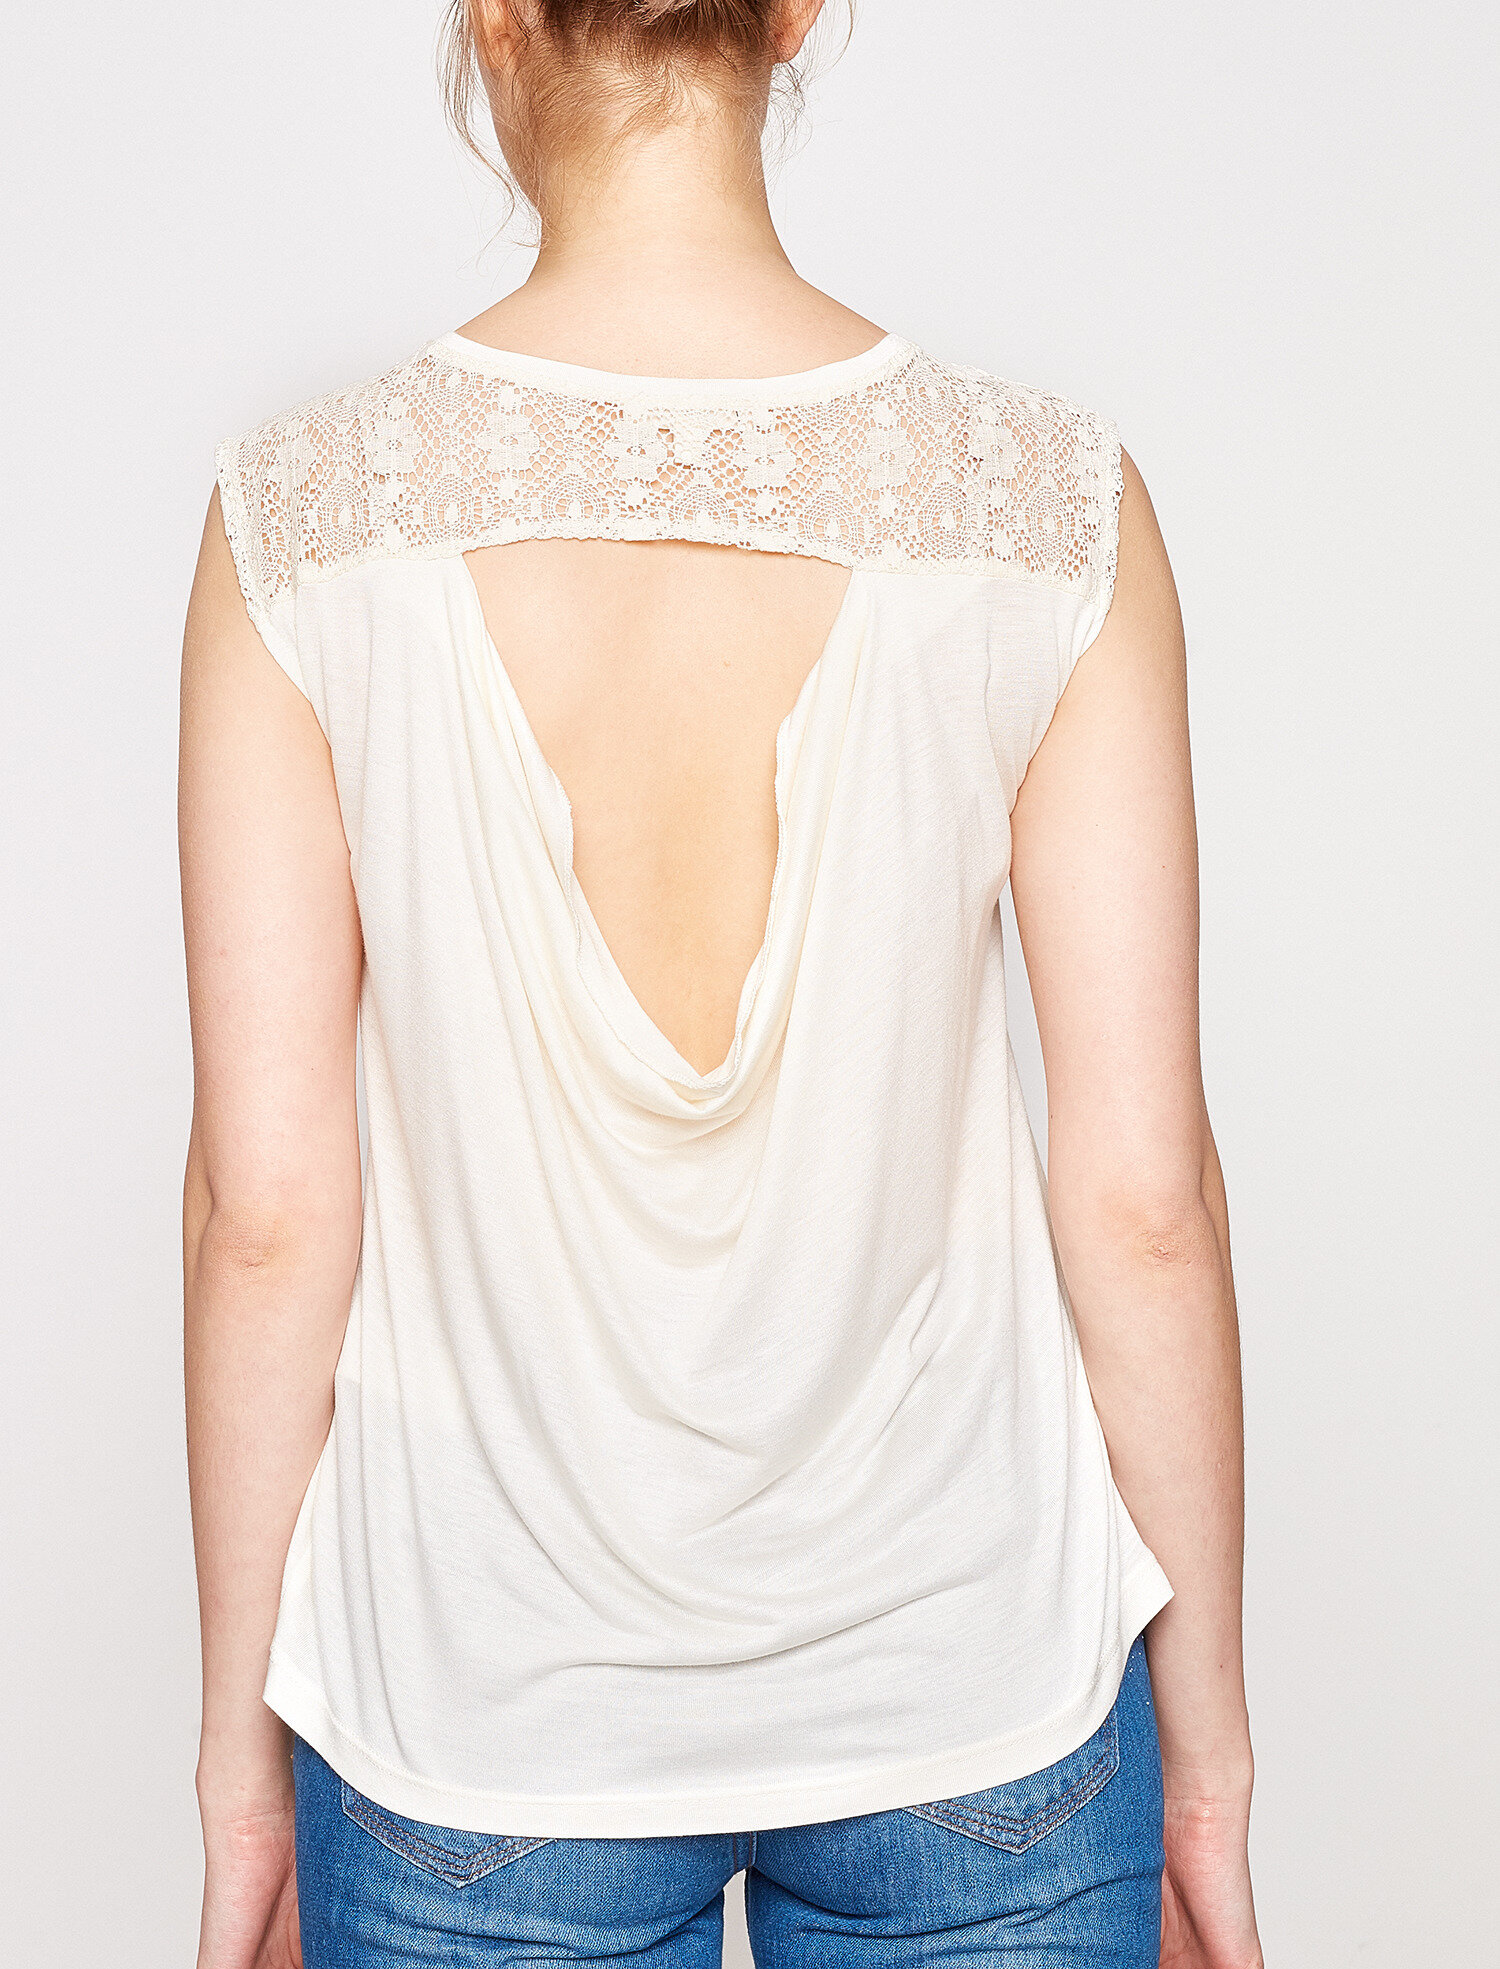 lace detailed t-shirt. pic 1; pic 2; pic 3 ...